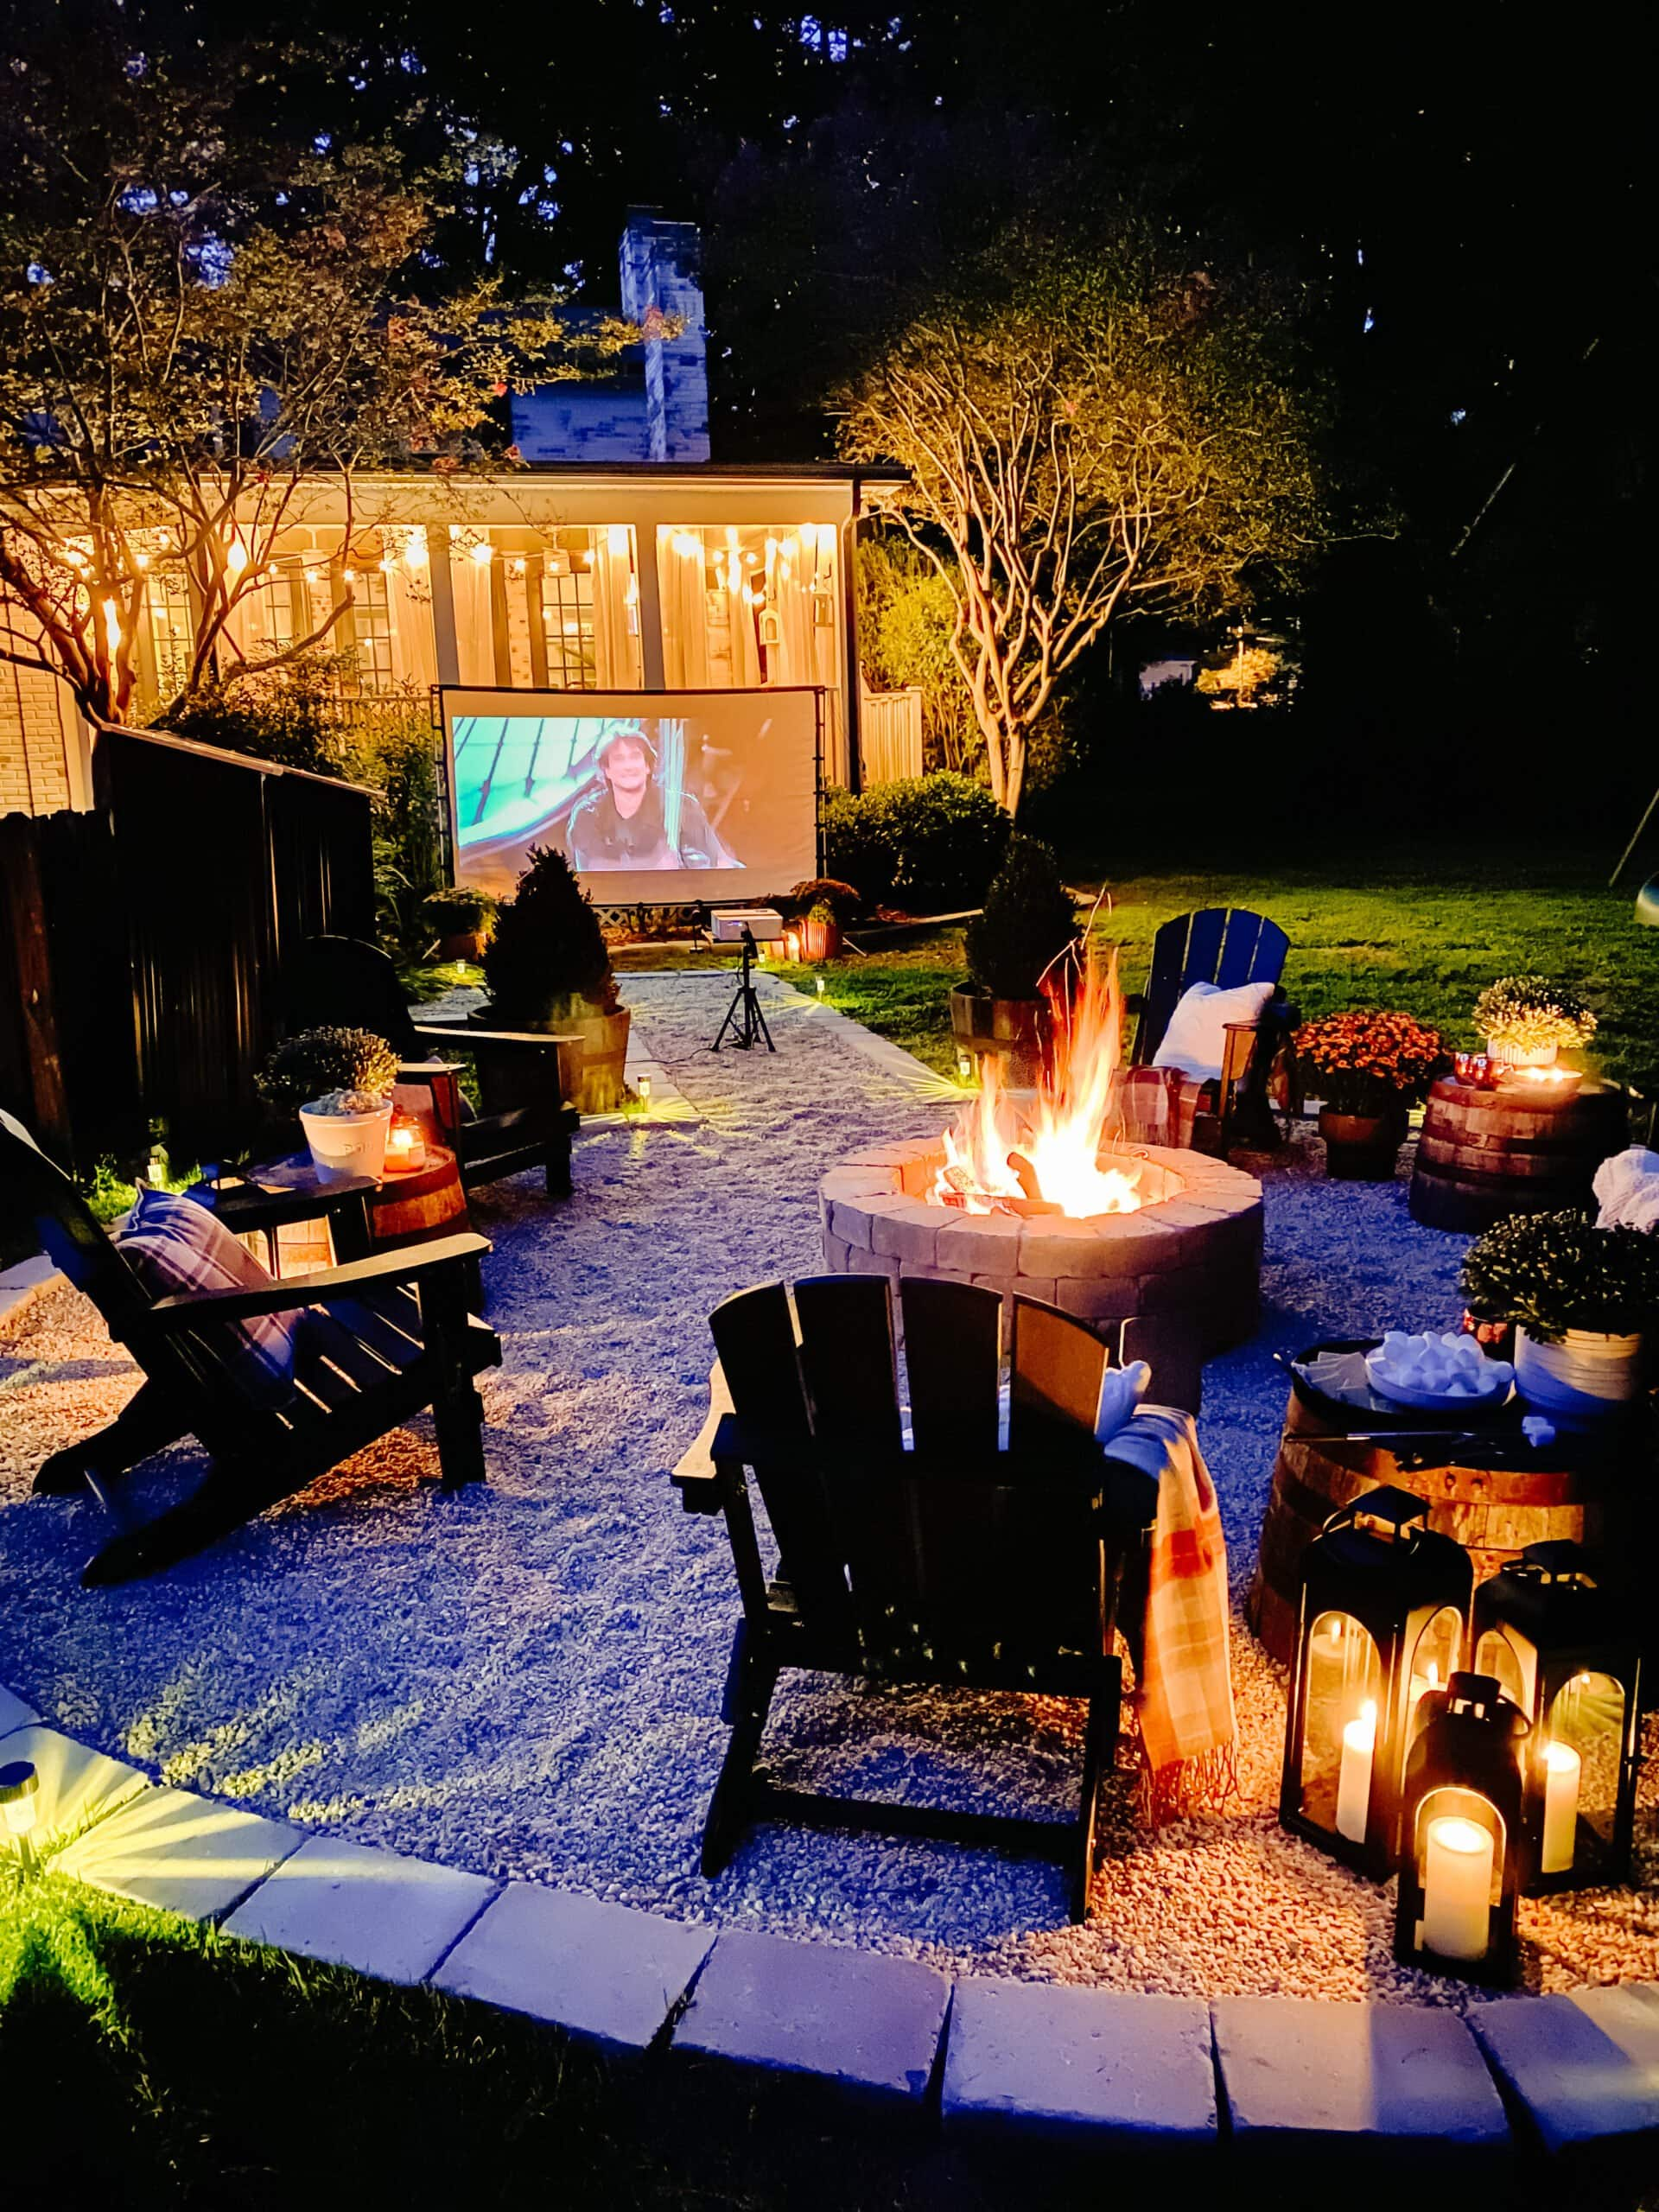 fire pit idea - outdoor movie theater backyard party